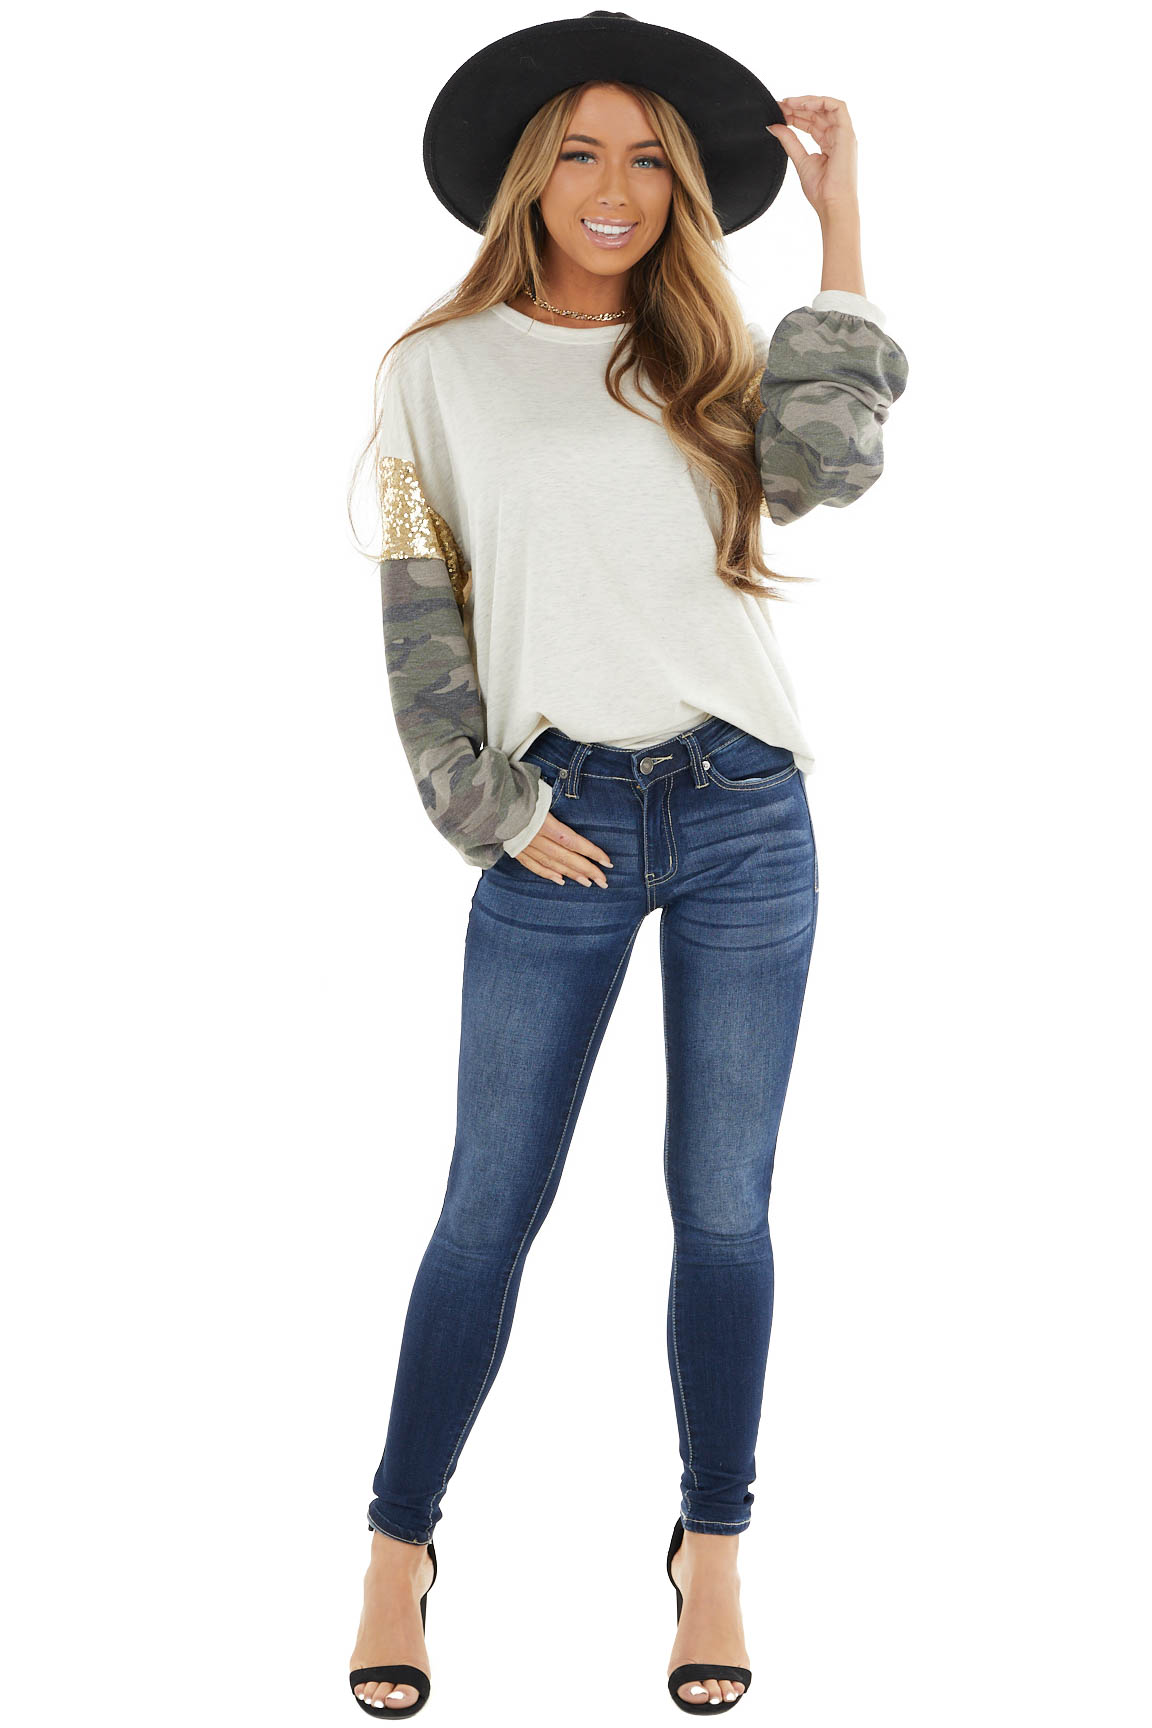 Oatmeal Knit Top with Camo Print and Gold Sequin Long Sleeve